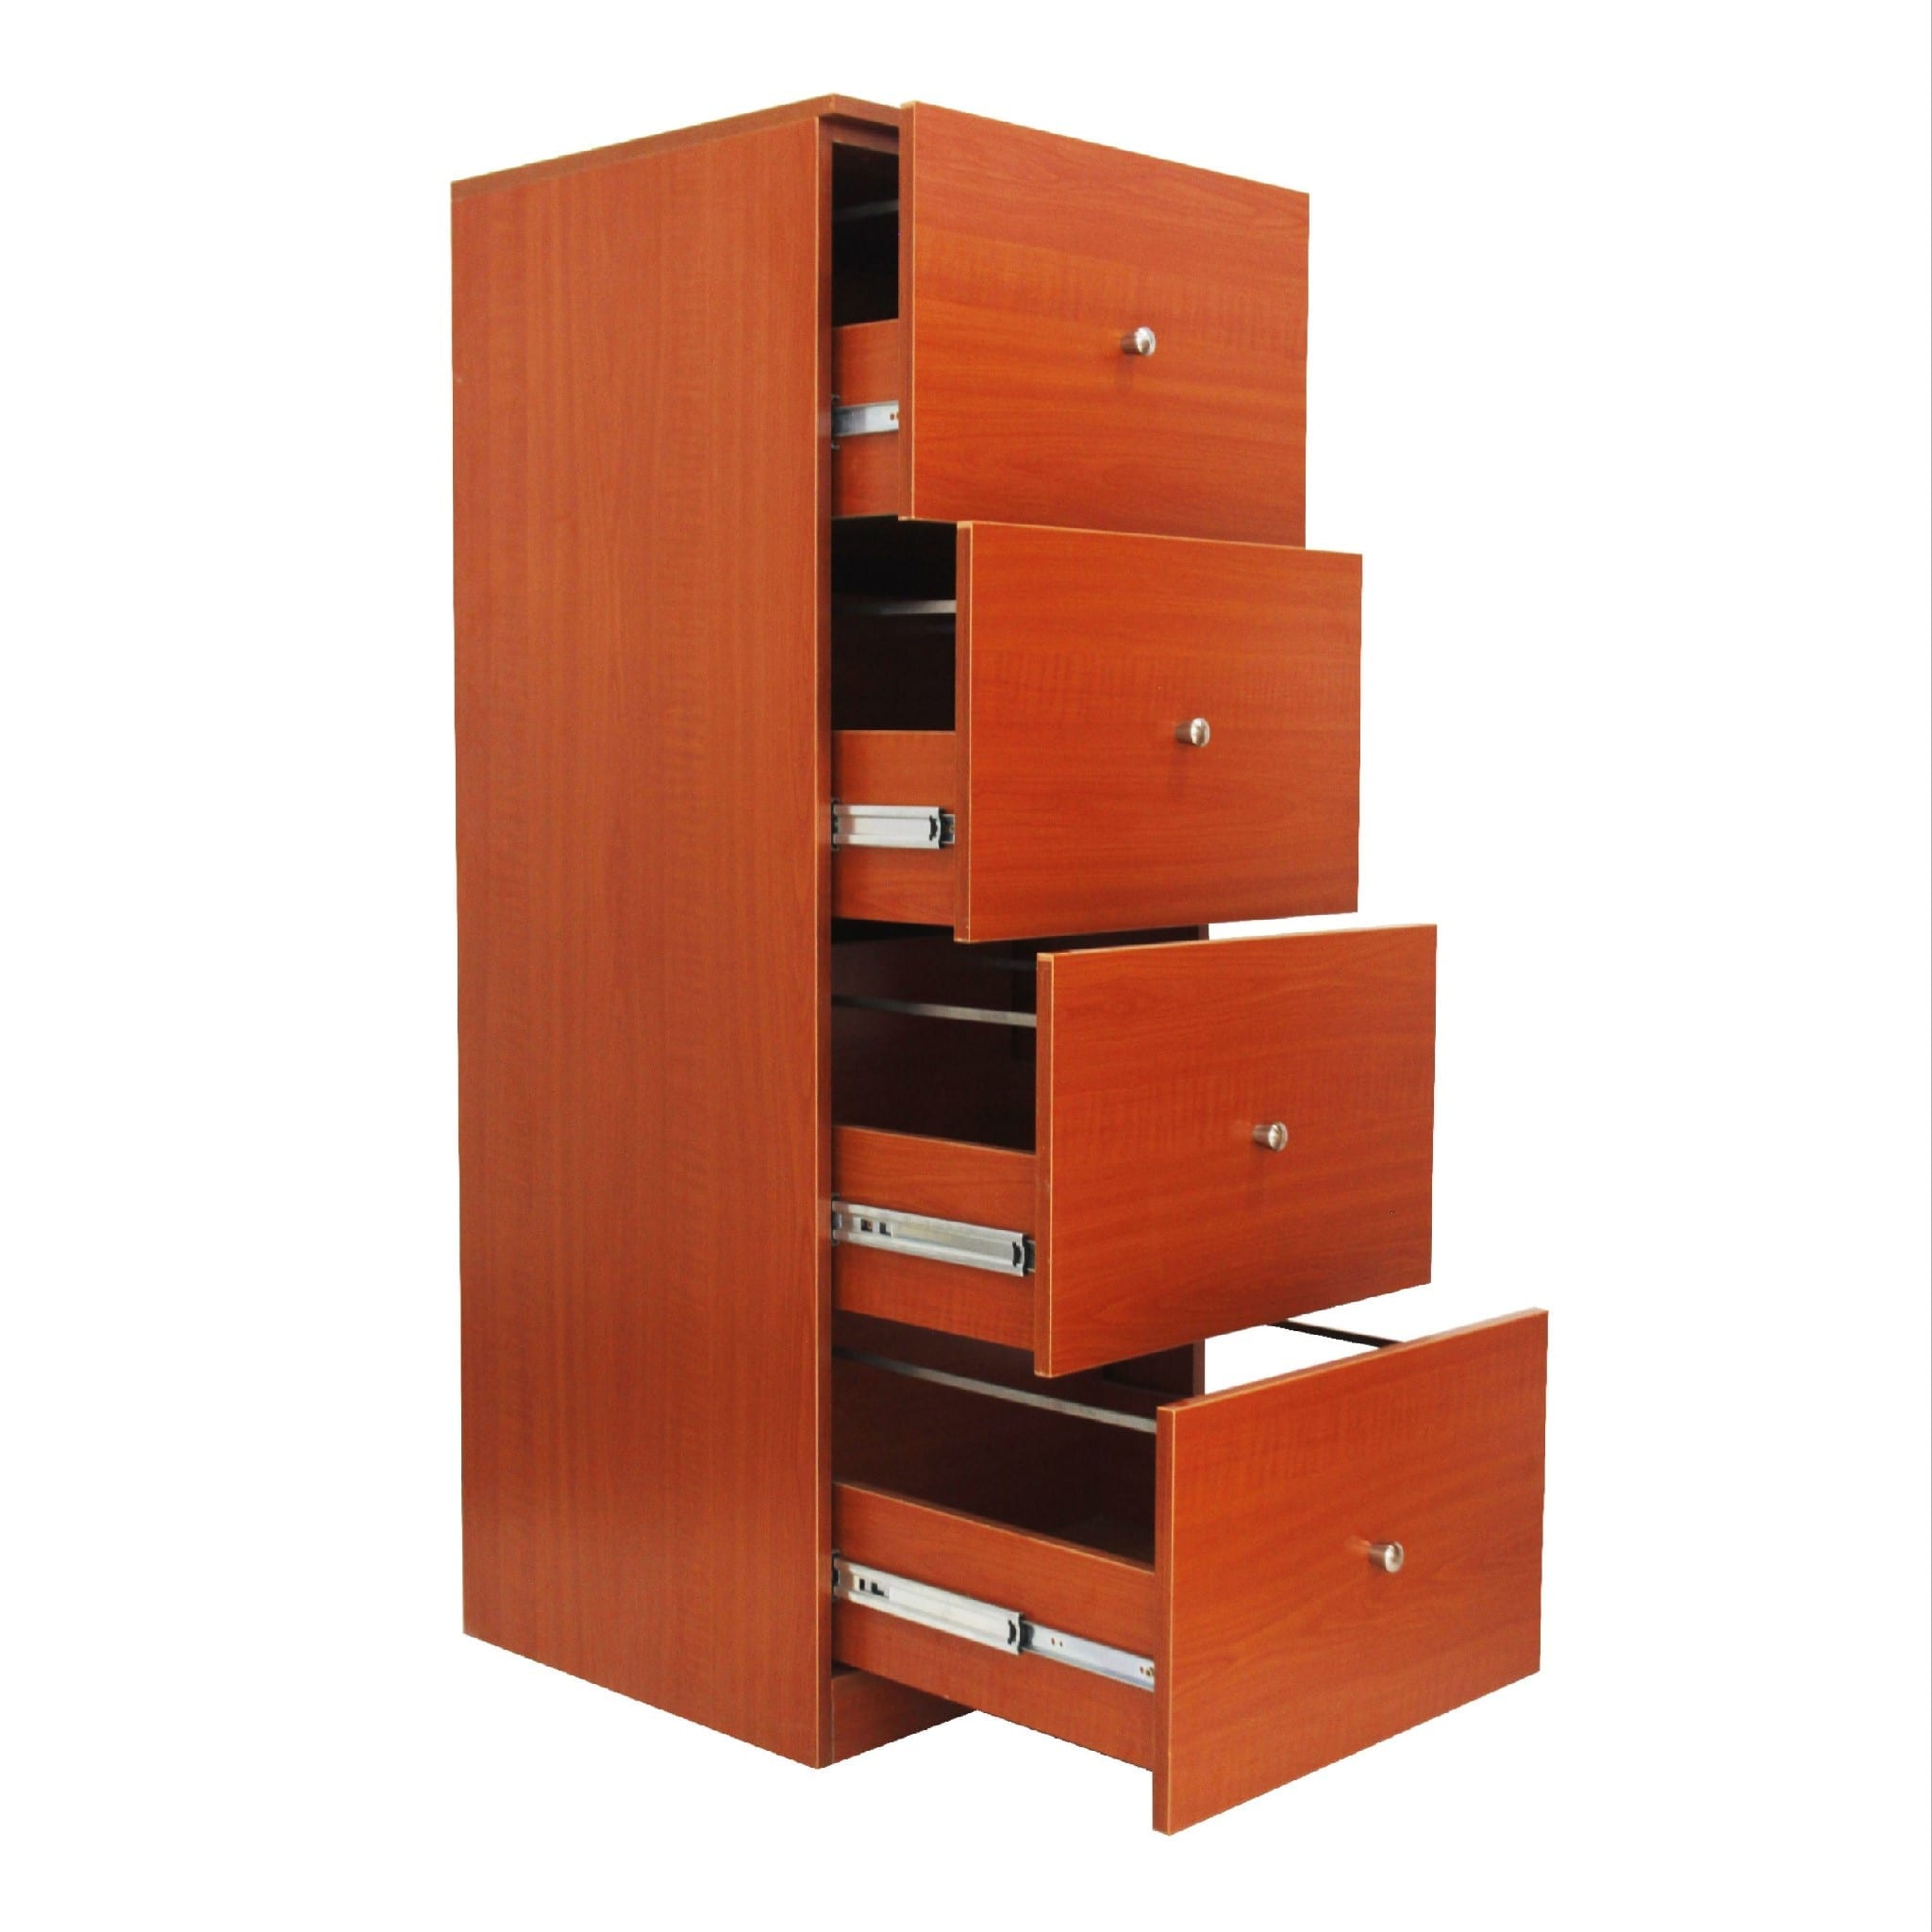 organizing budget blog dollar on office top store organizers your utensil use a to part keep cheap video ideas drawer supplies of desk organization